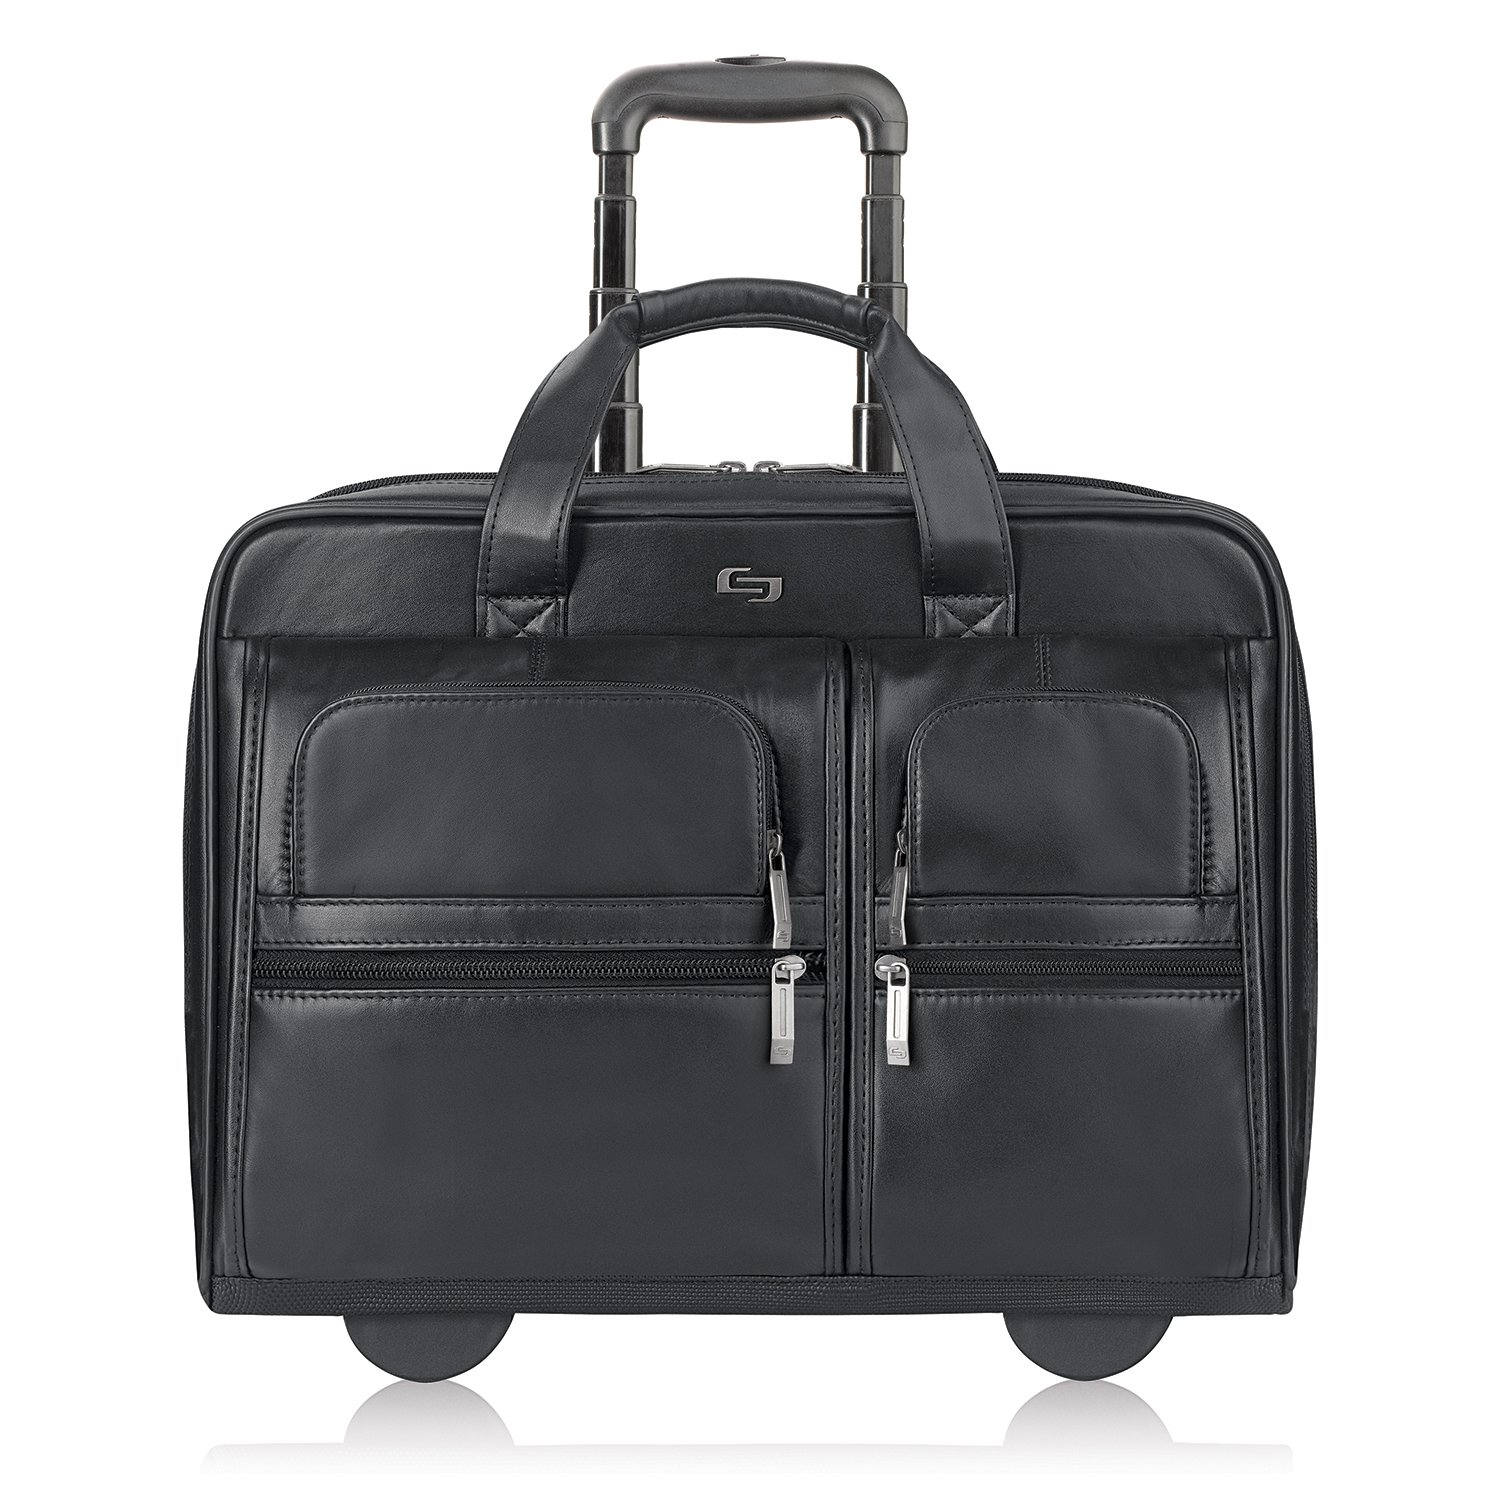 SOLO Premium Leather Rolling 15.6 Laptop Case, Black, D957-4